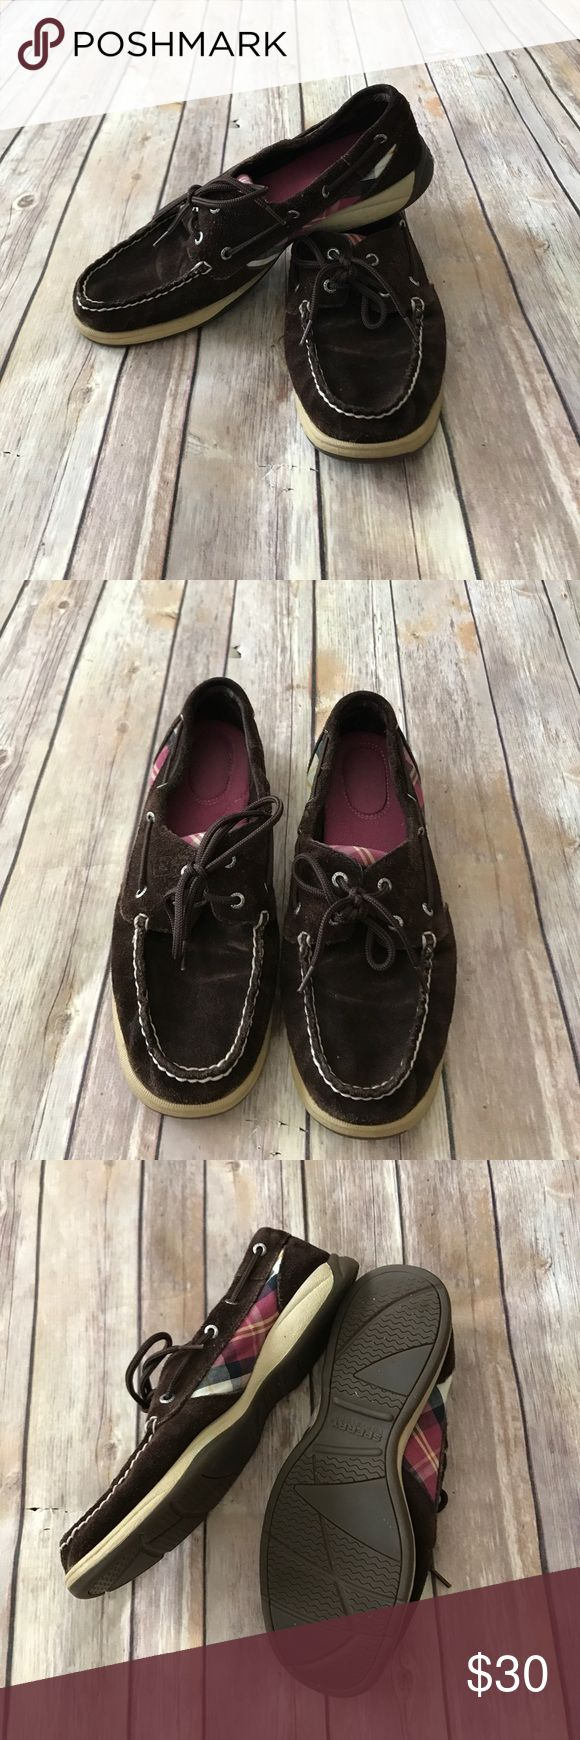 🎉Sale🎉Sperry plaid boat shoes Sperry Top-Sider boat shoes in EUC. These are a chocolate brown suede with pink plaid, and have very little wear on them. Make an offer or bundle and save! Sperry Top-Sider Shoes